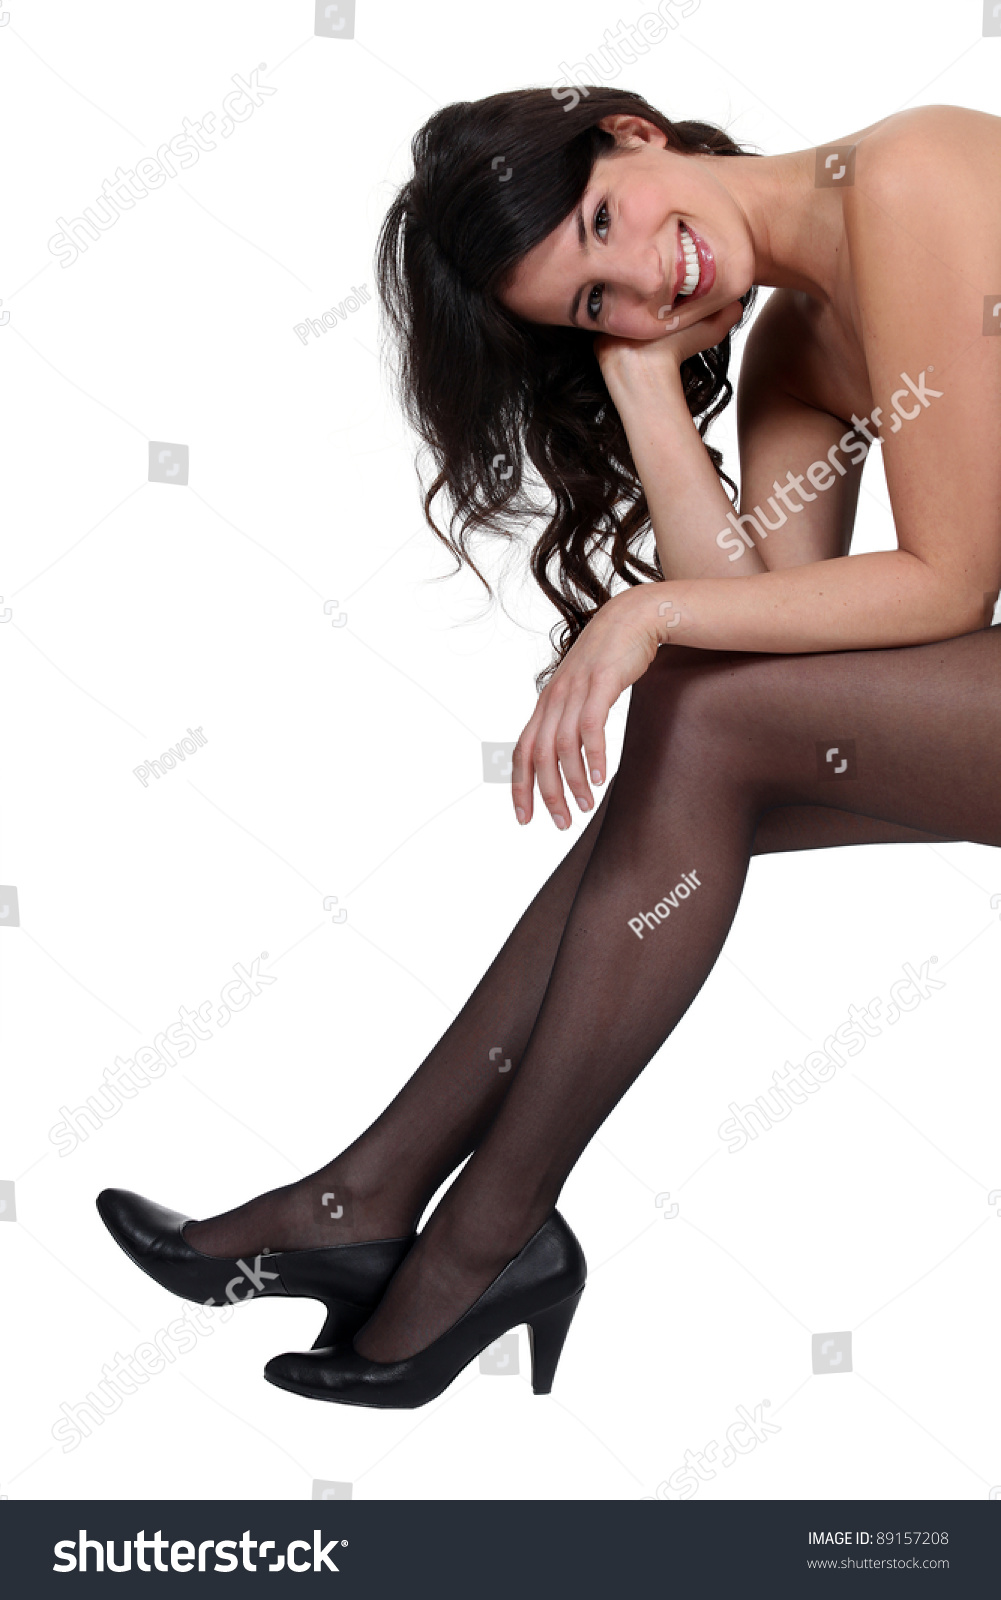 Nude Woman Wearing High Heels Stock Photo 89157208 - Shutterstock